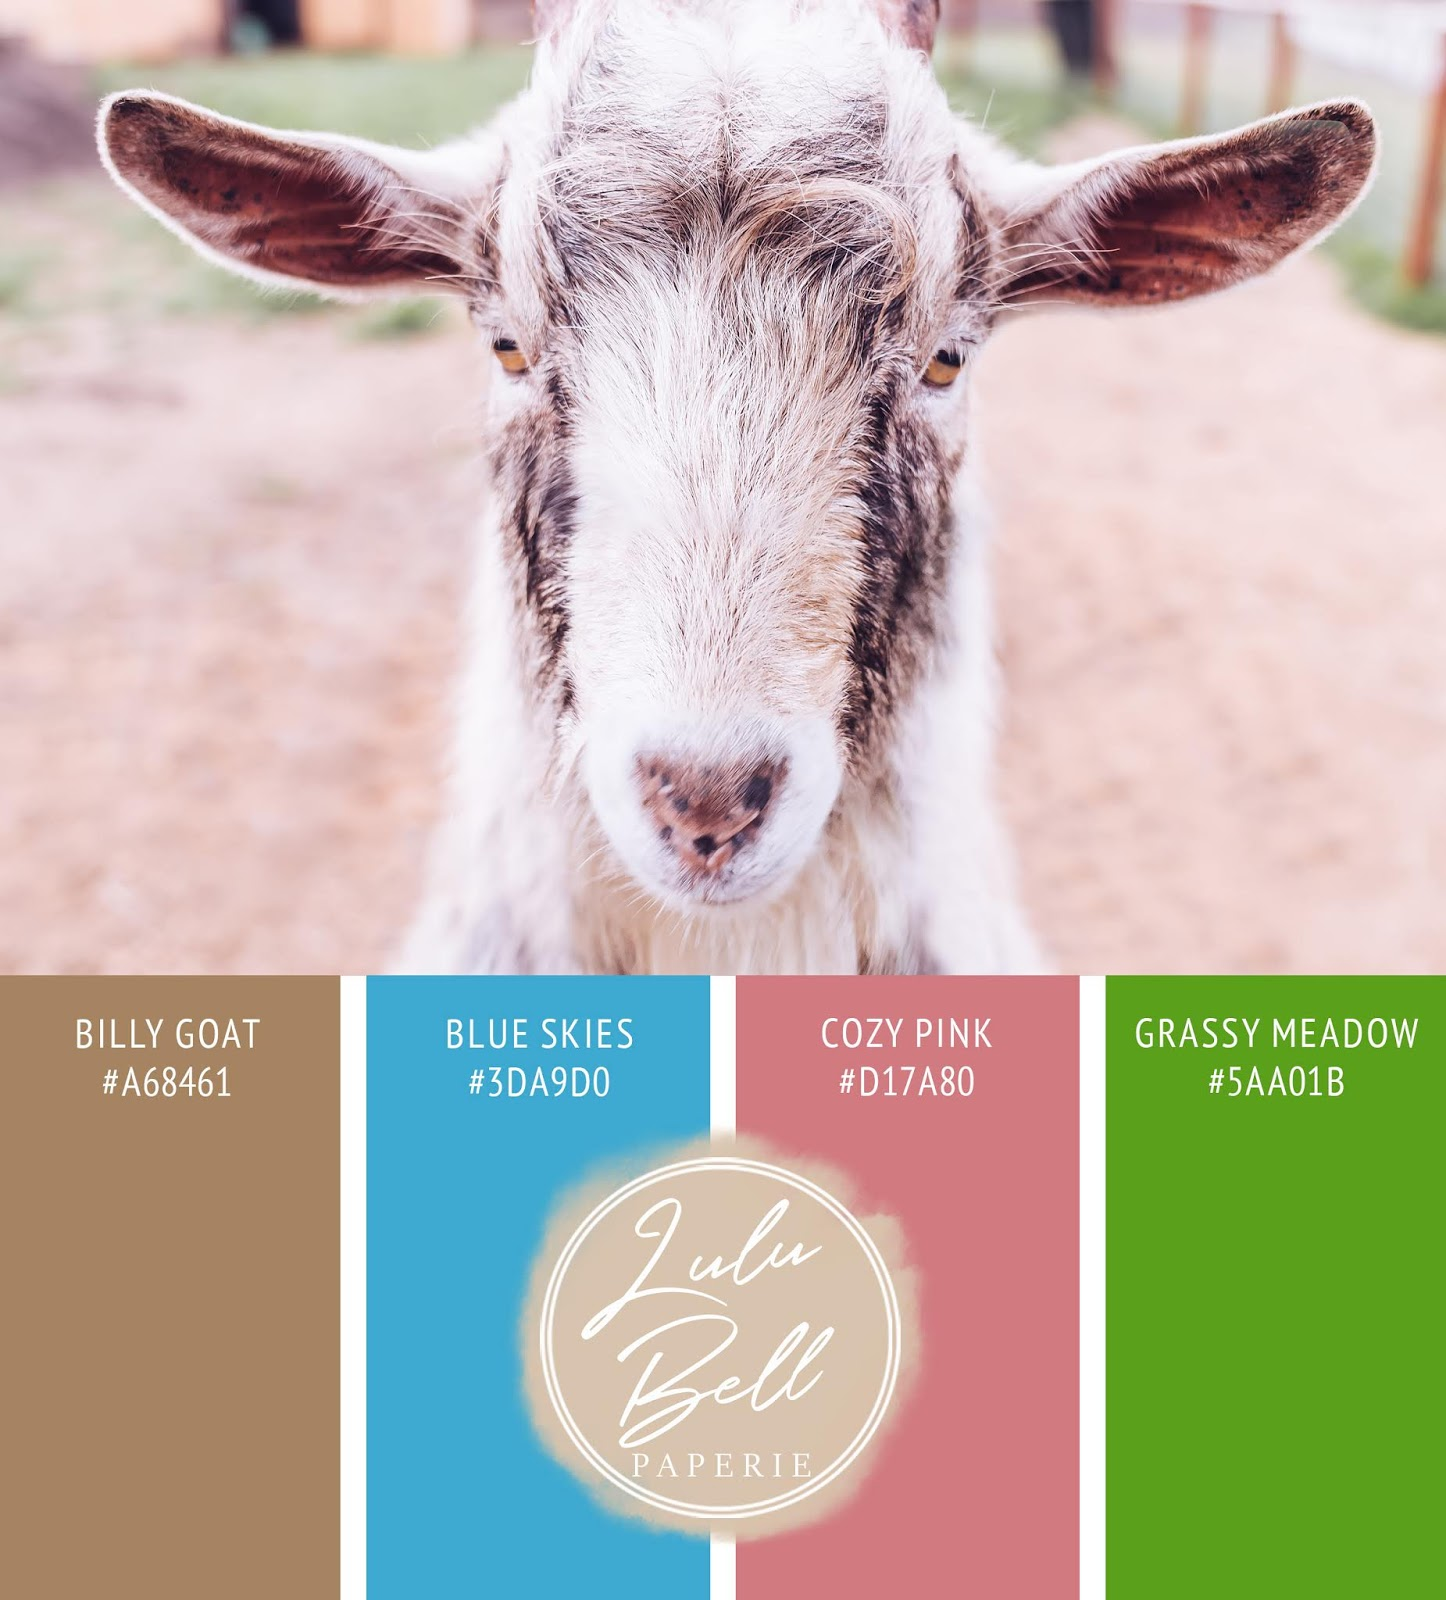 Paint swatch color palette card, with hex codes - on the farm in cozy pink, blue skies, grassy meadow green, and billy goat brown.